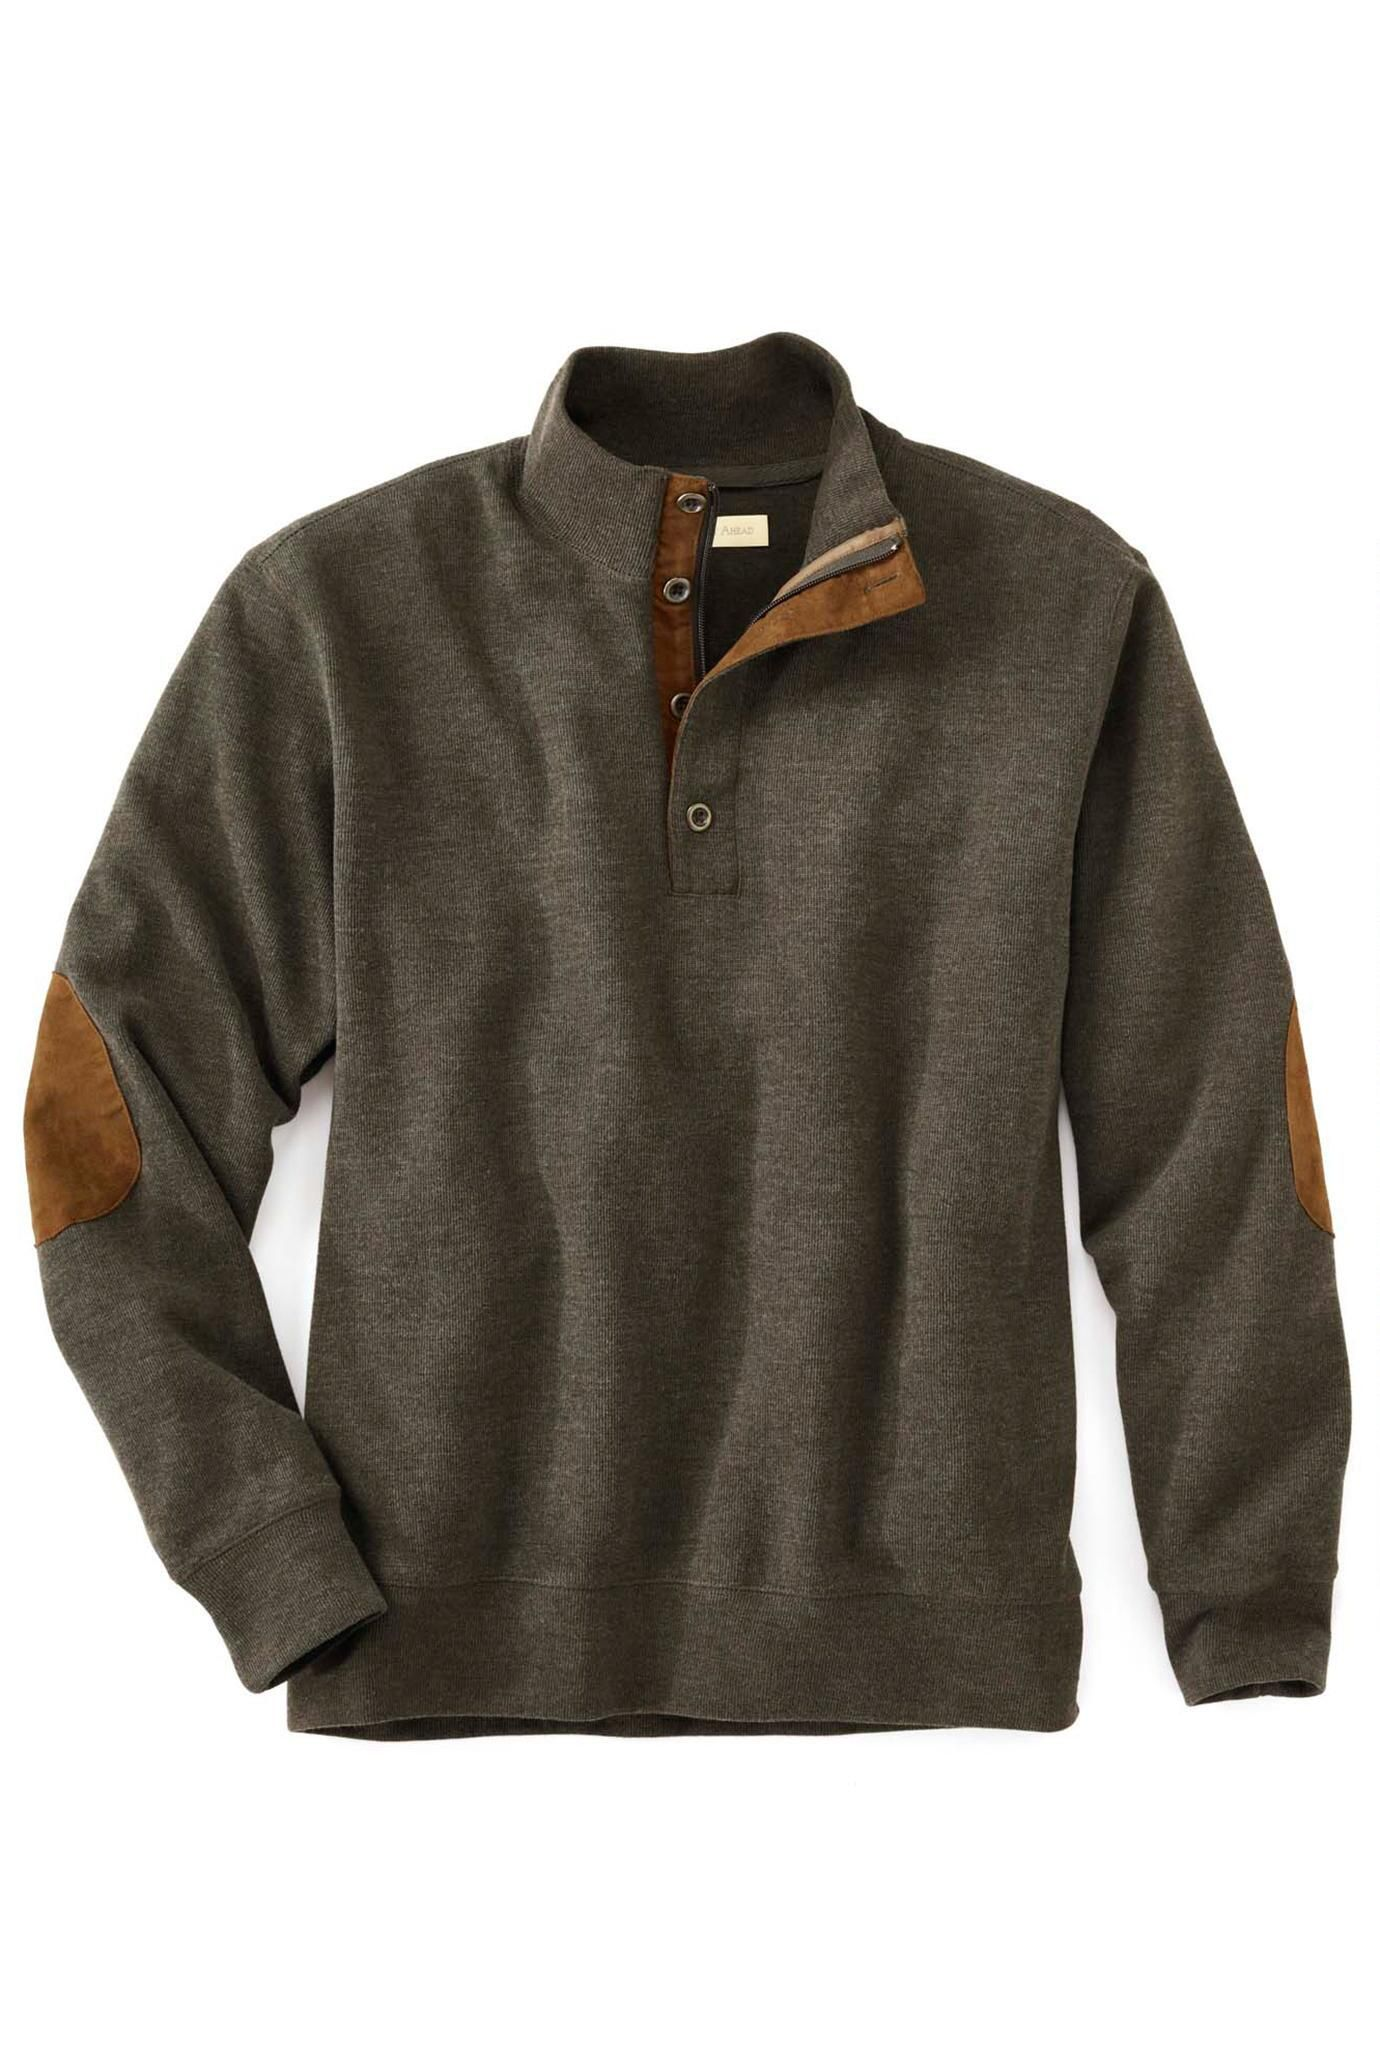 Make It A Double Flatback Zip Mock Pullover   Territory Ahead is part of Pullover sweater men - Shop Territory Ahead for our Make It A Double Flatback Zip Mock Pullover  Browse our online catalog for more original casual and unique clothing, shoes & accessories made for life's adventures